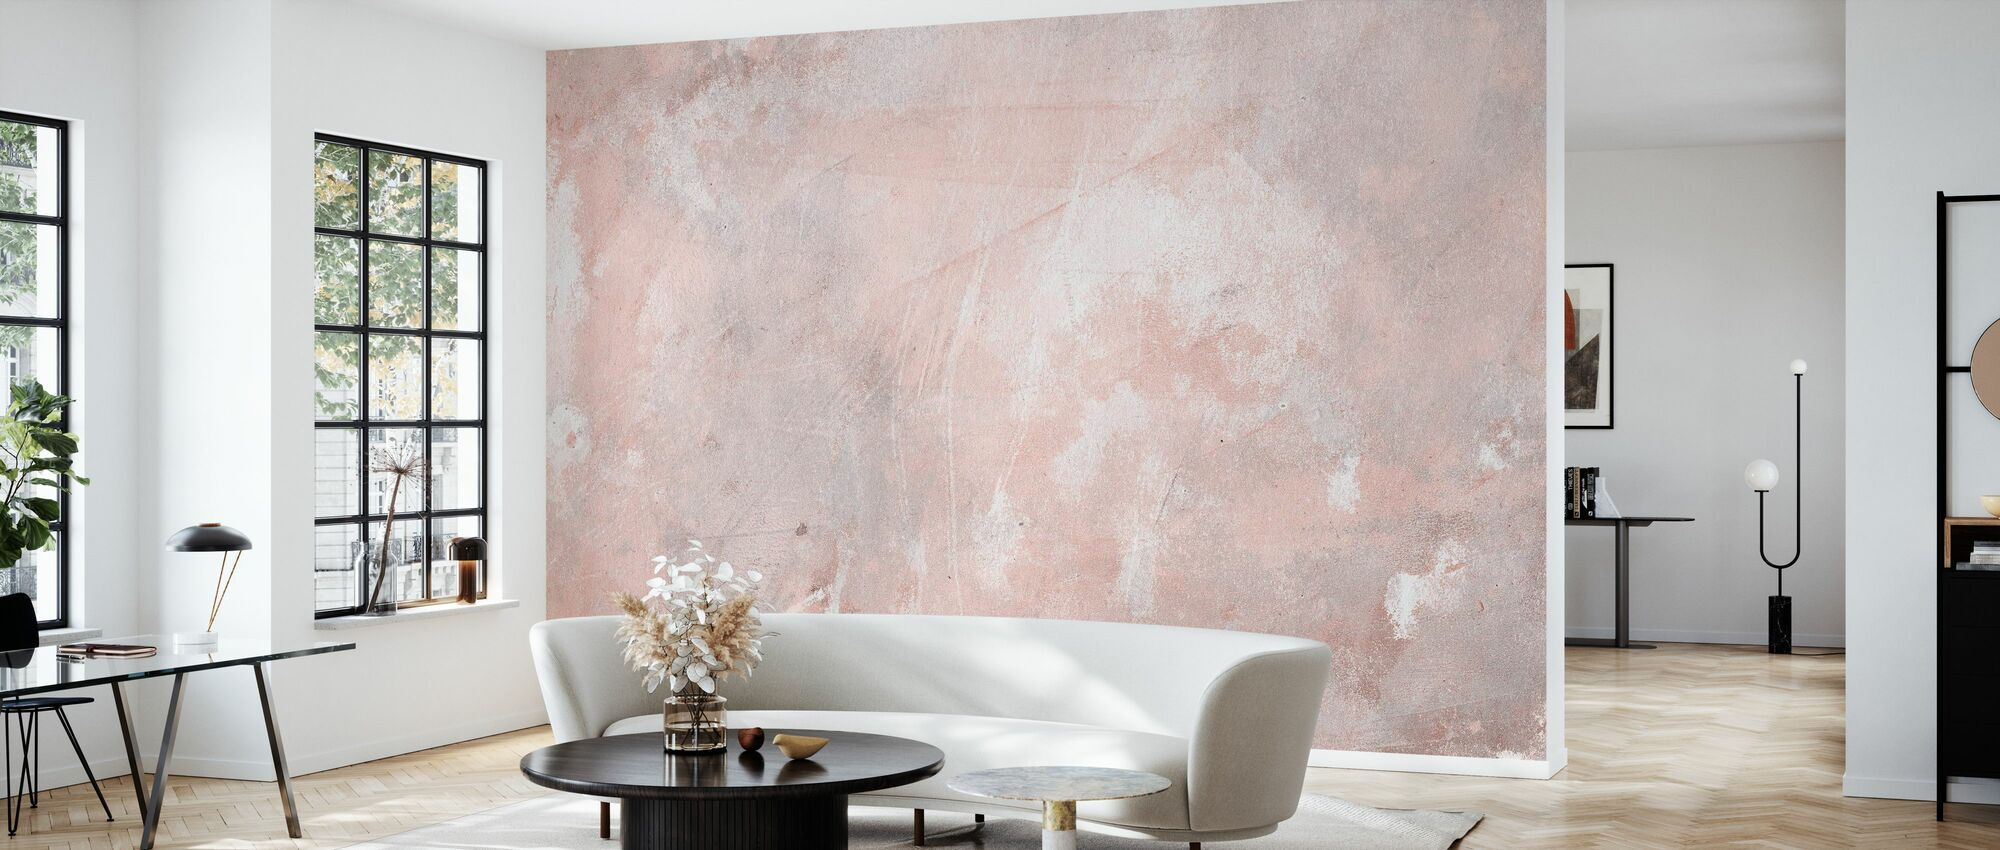 Soft Grunge Stone Wall - Wallpaper - Living Room